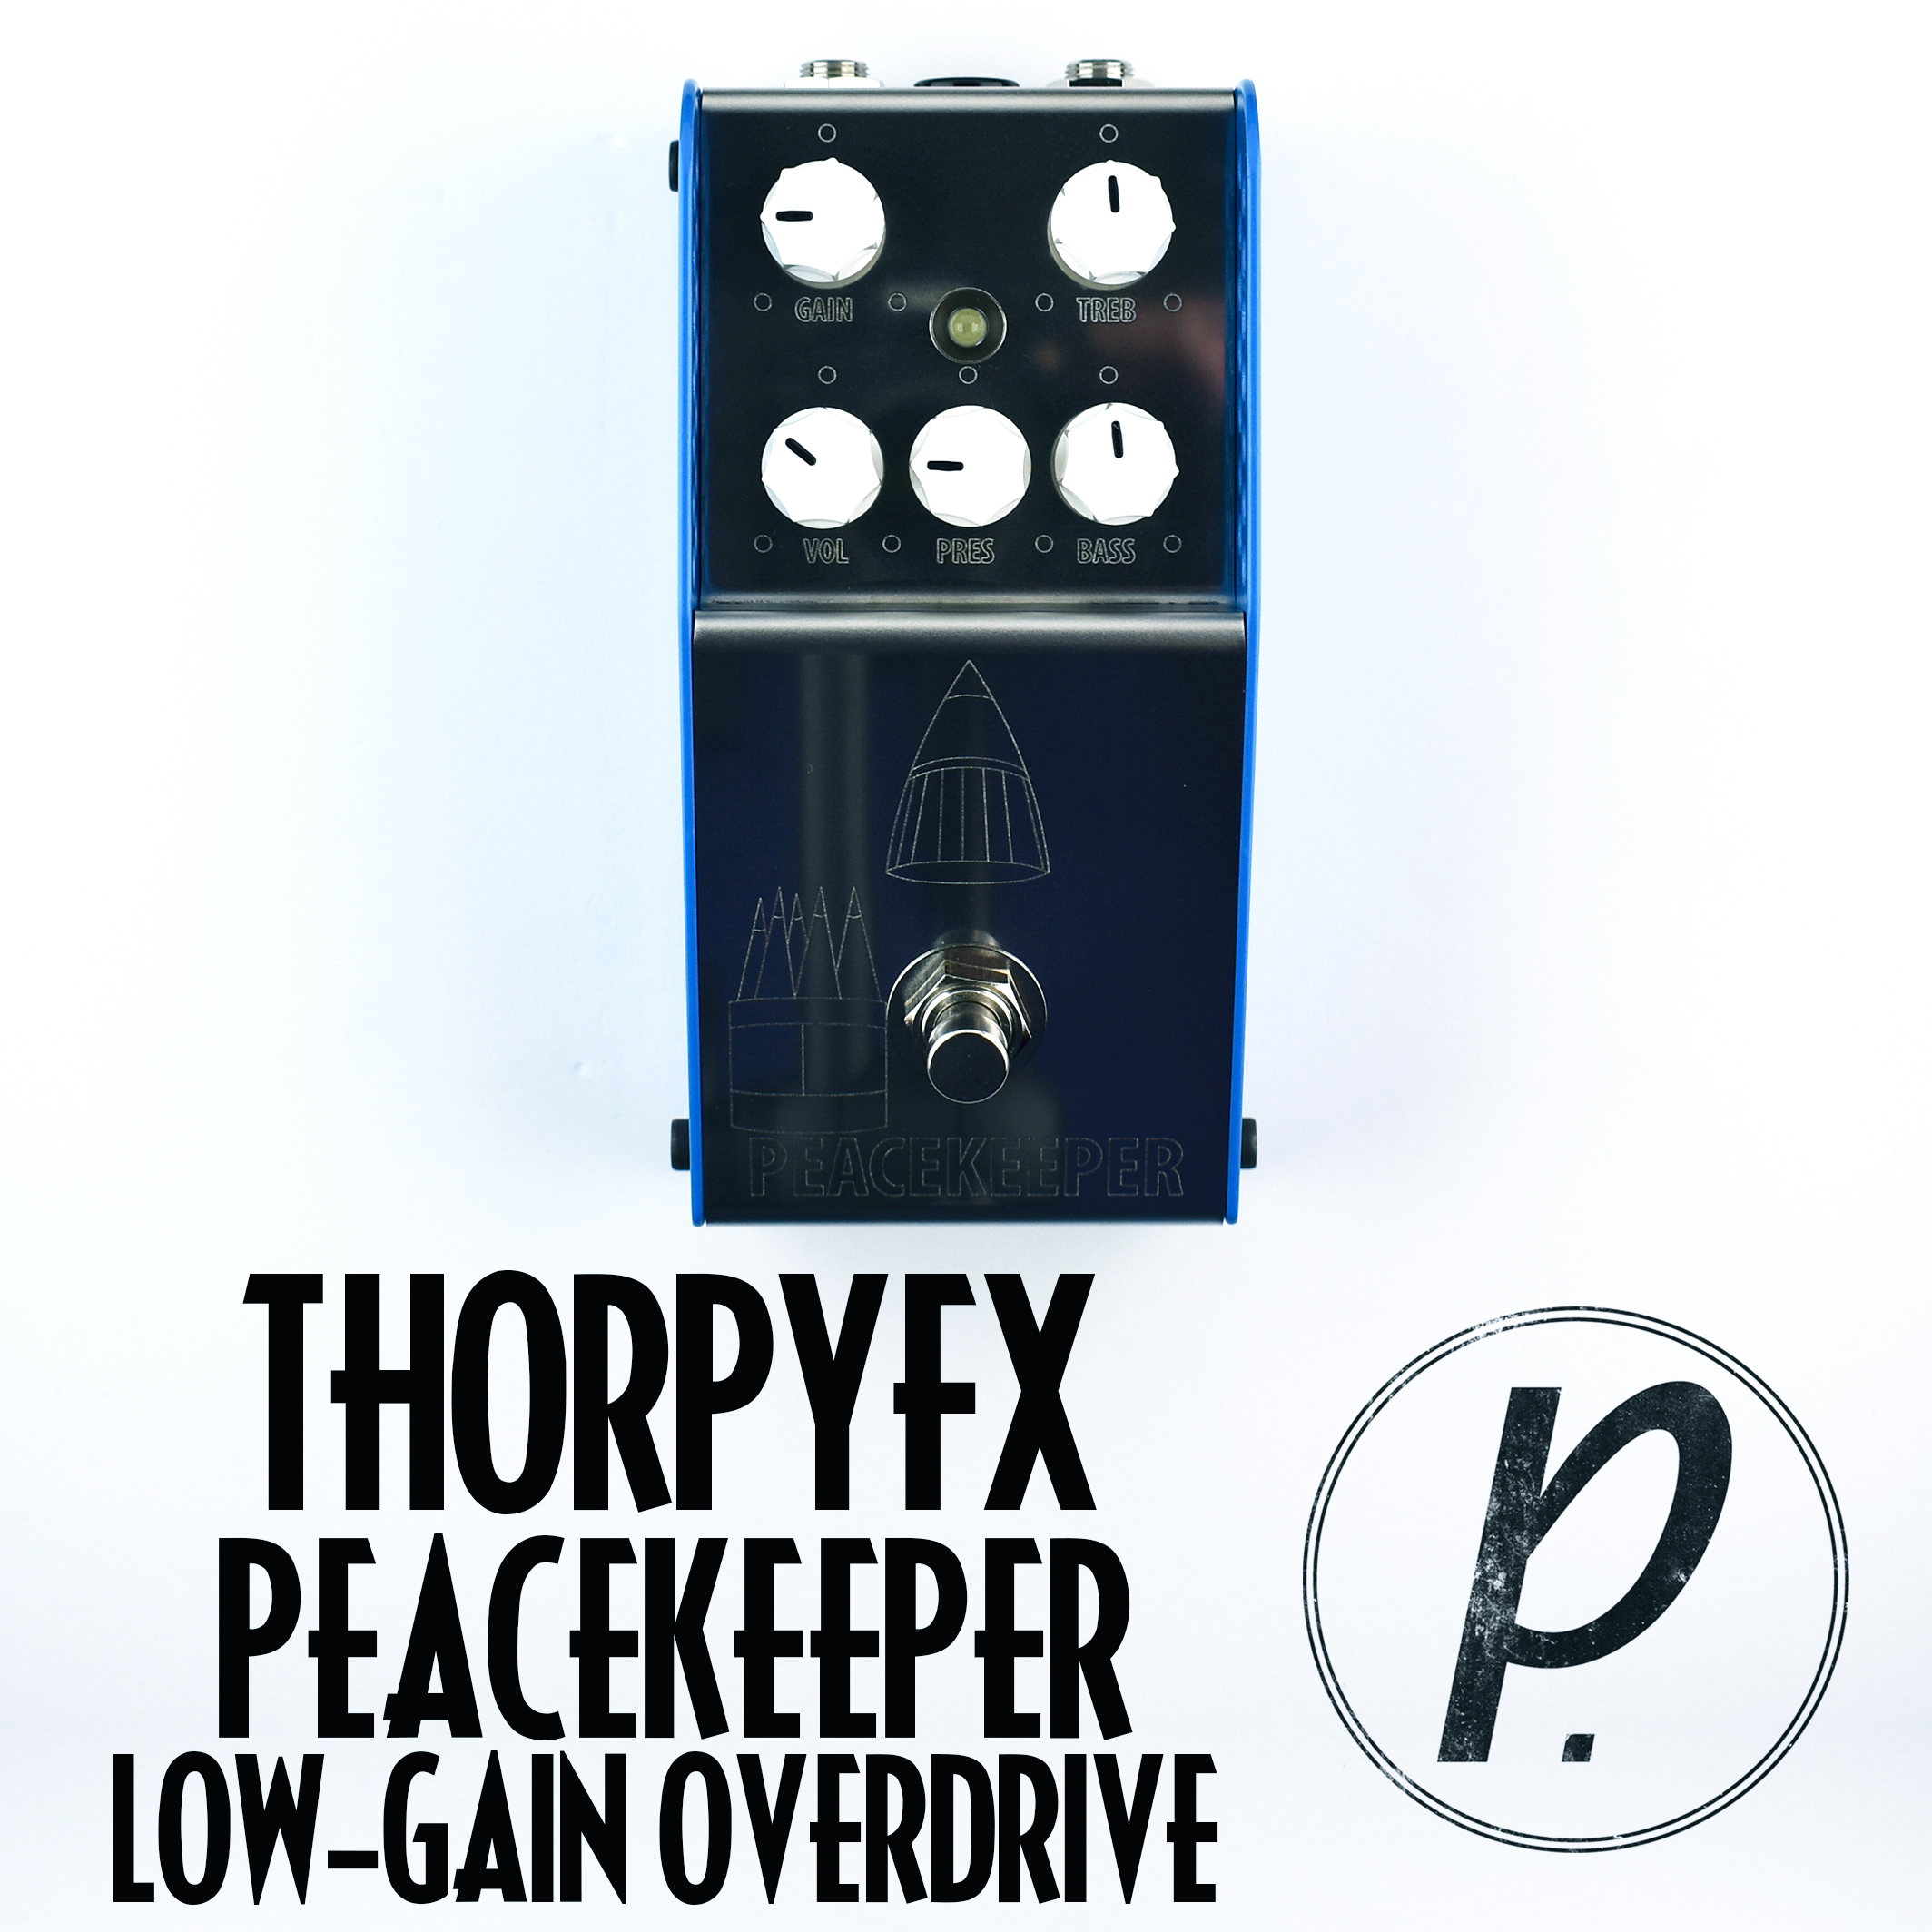 Thorpyfx Peacekeeper Low Gain Overdrive Pedal Of The Day Bbe Wah Class A Circuit Design Icon Music